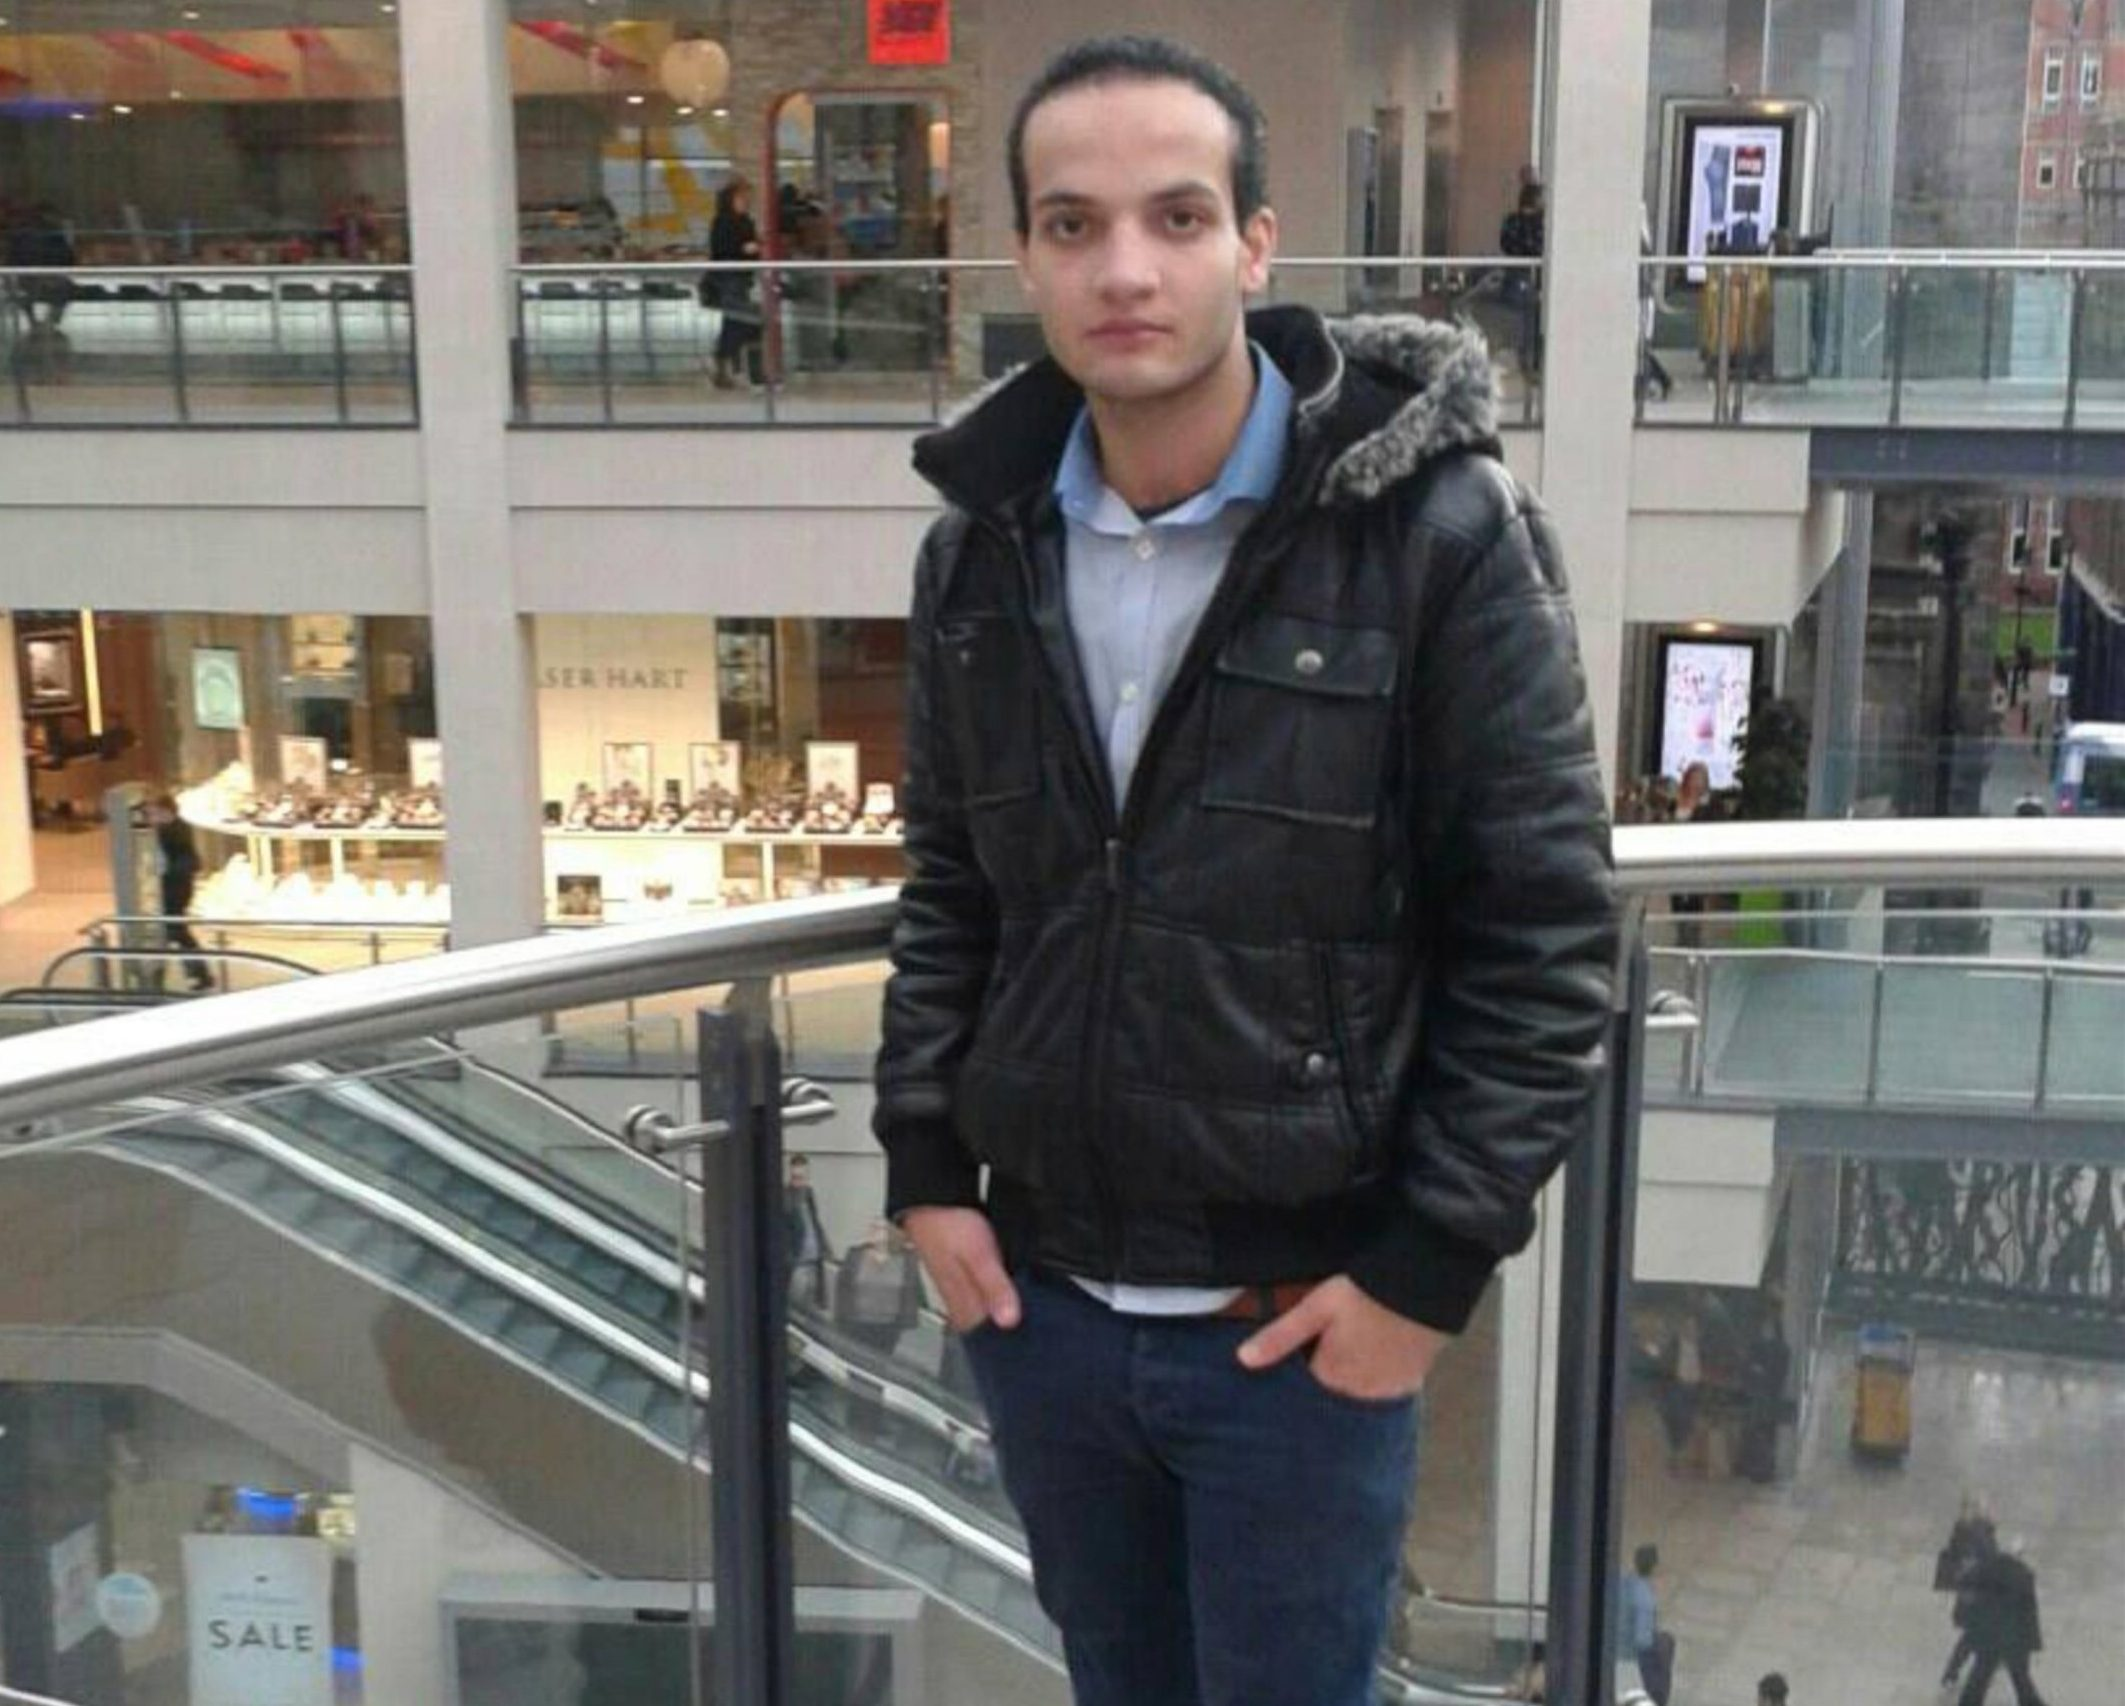 Syrian refugee arrested after Parsons Green terror attack released without charge